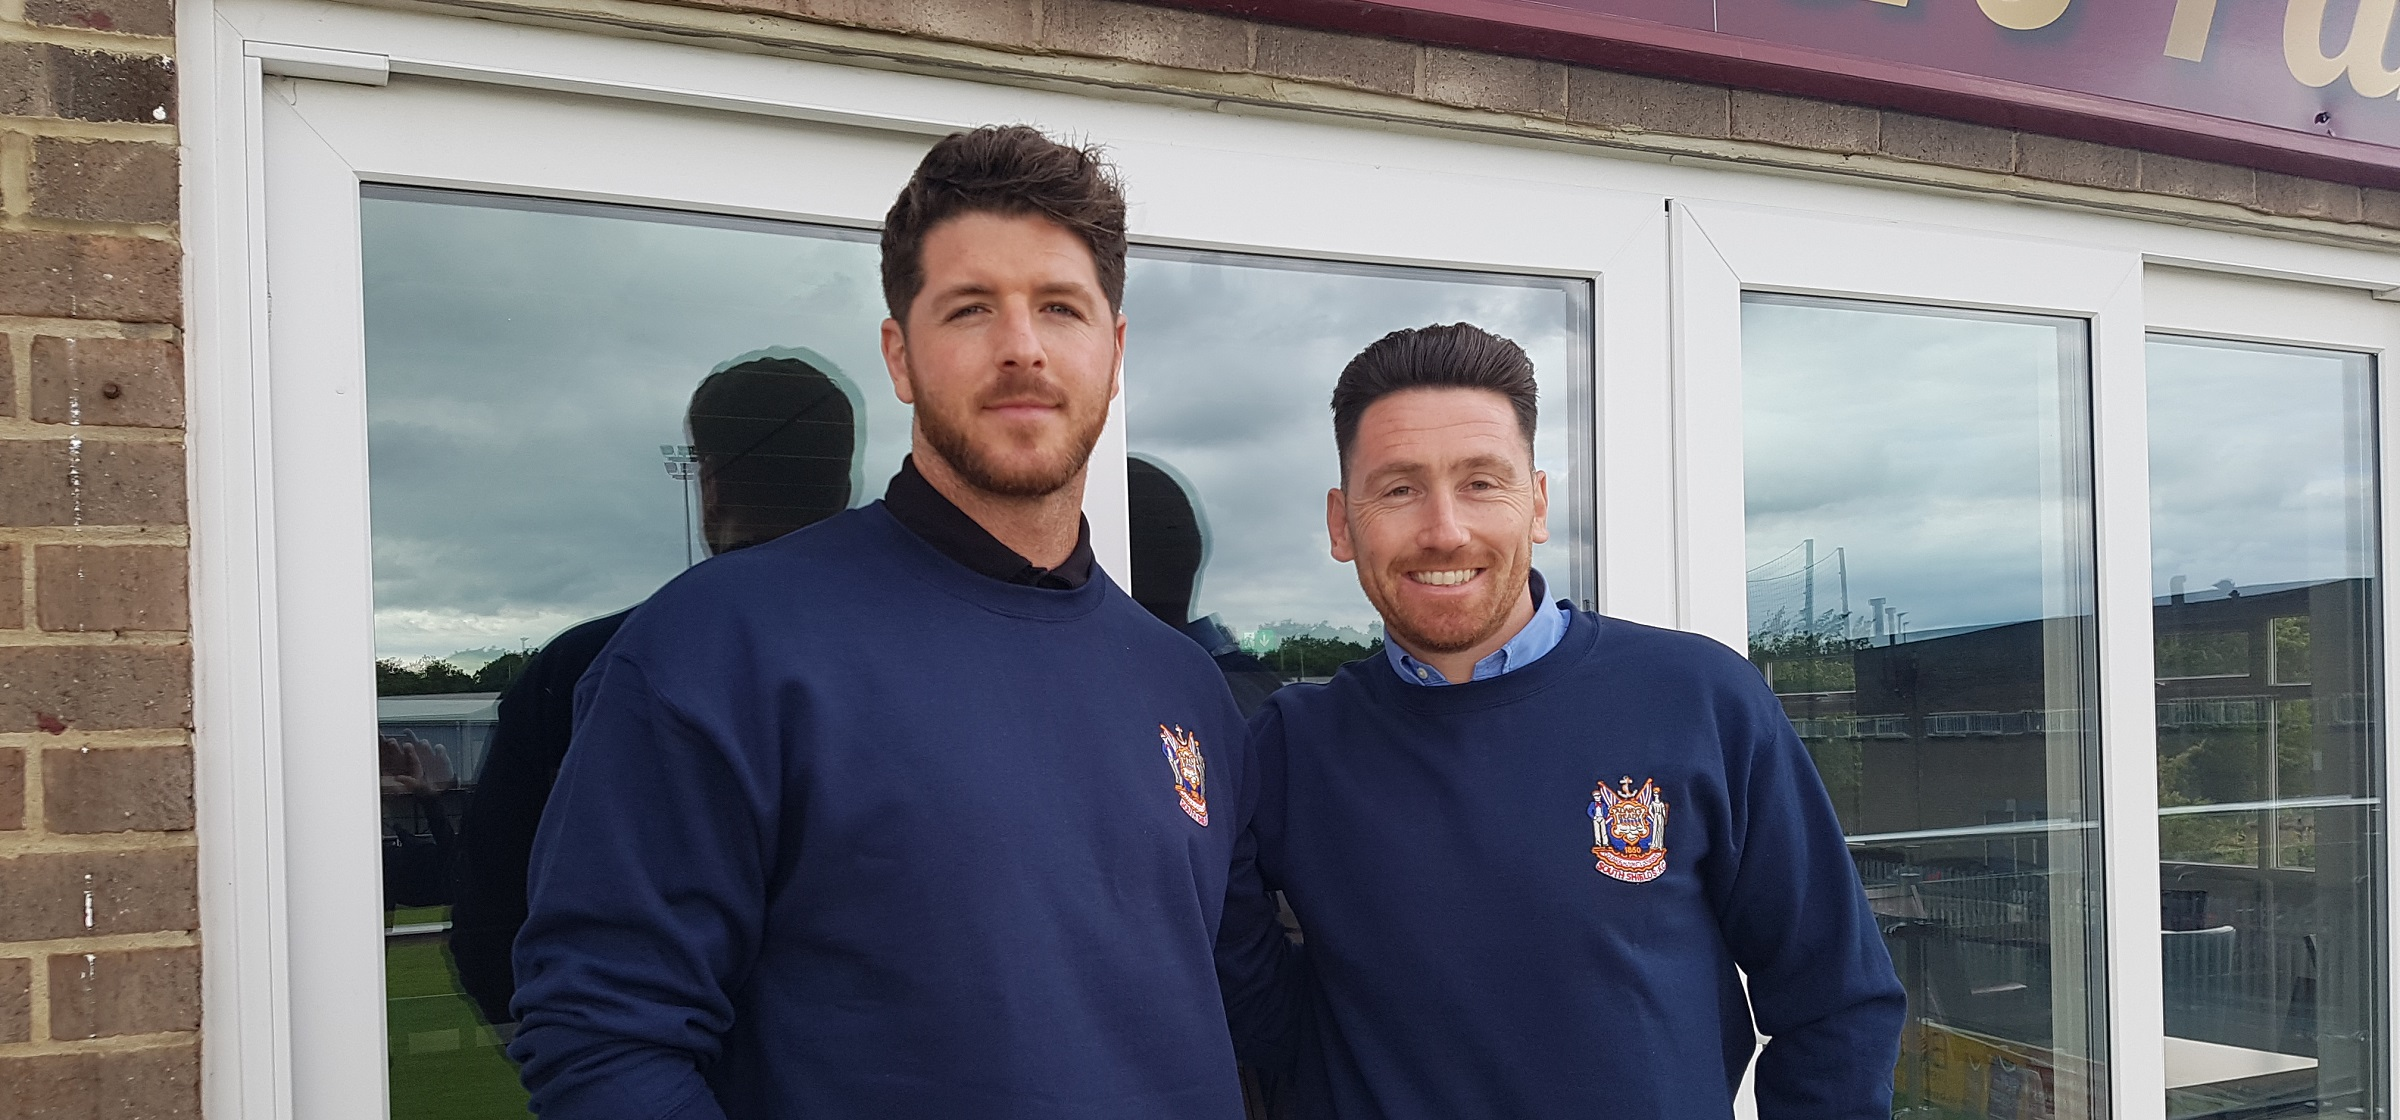 Leepaul Scroggins appointed manager of club's reserves team